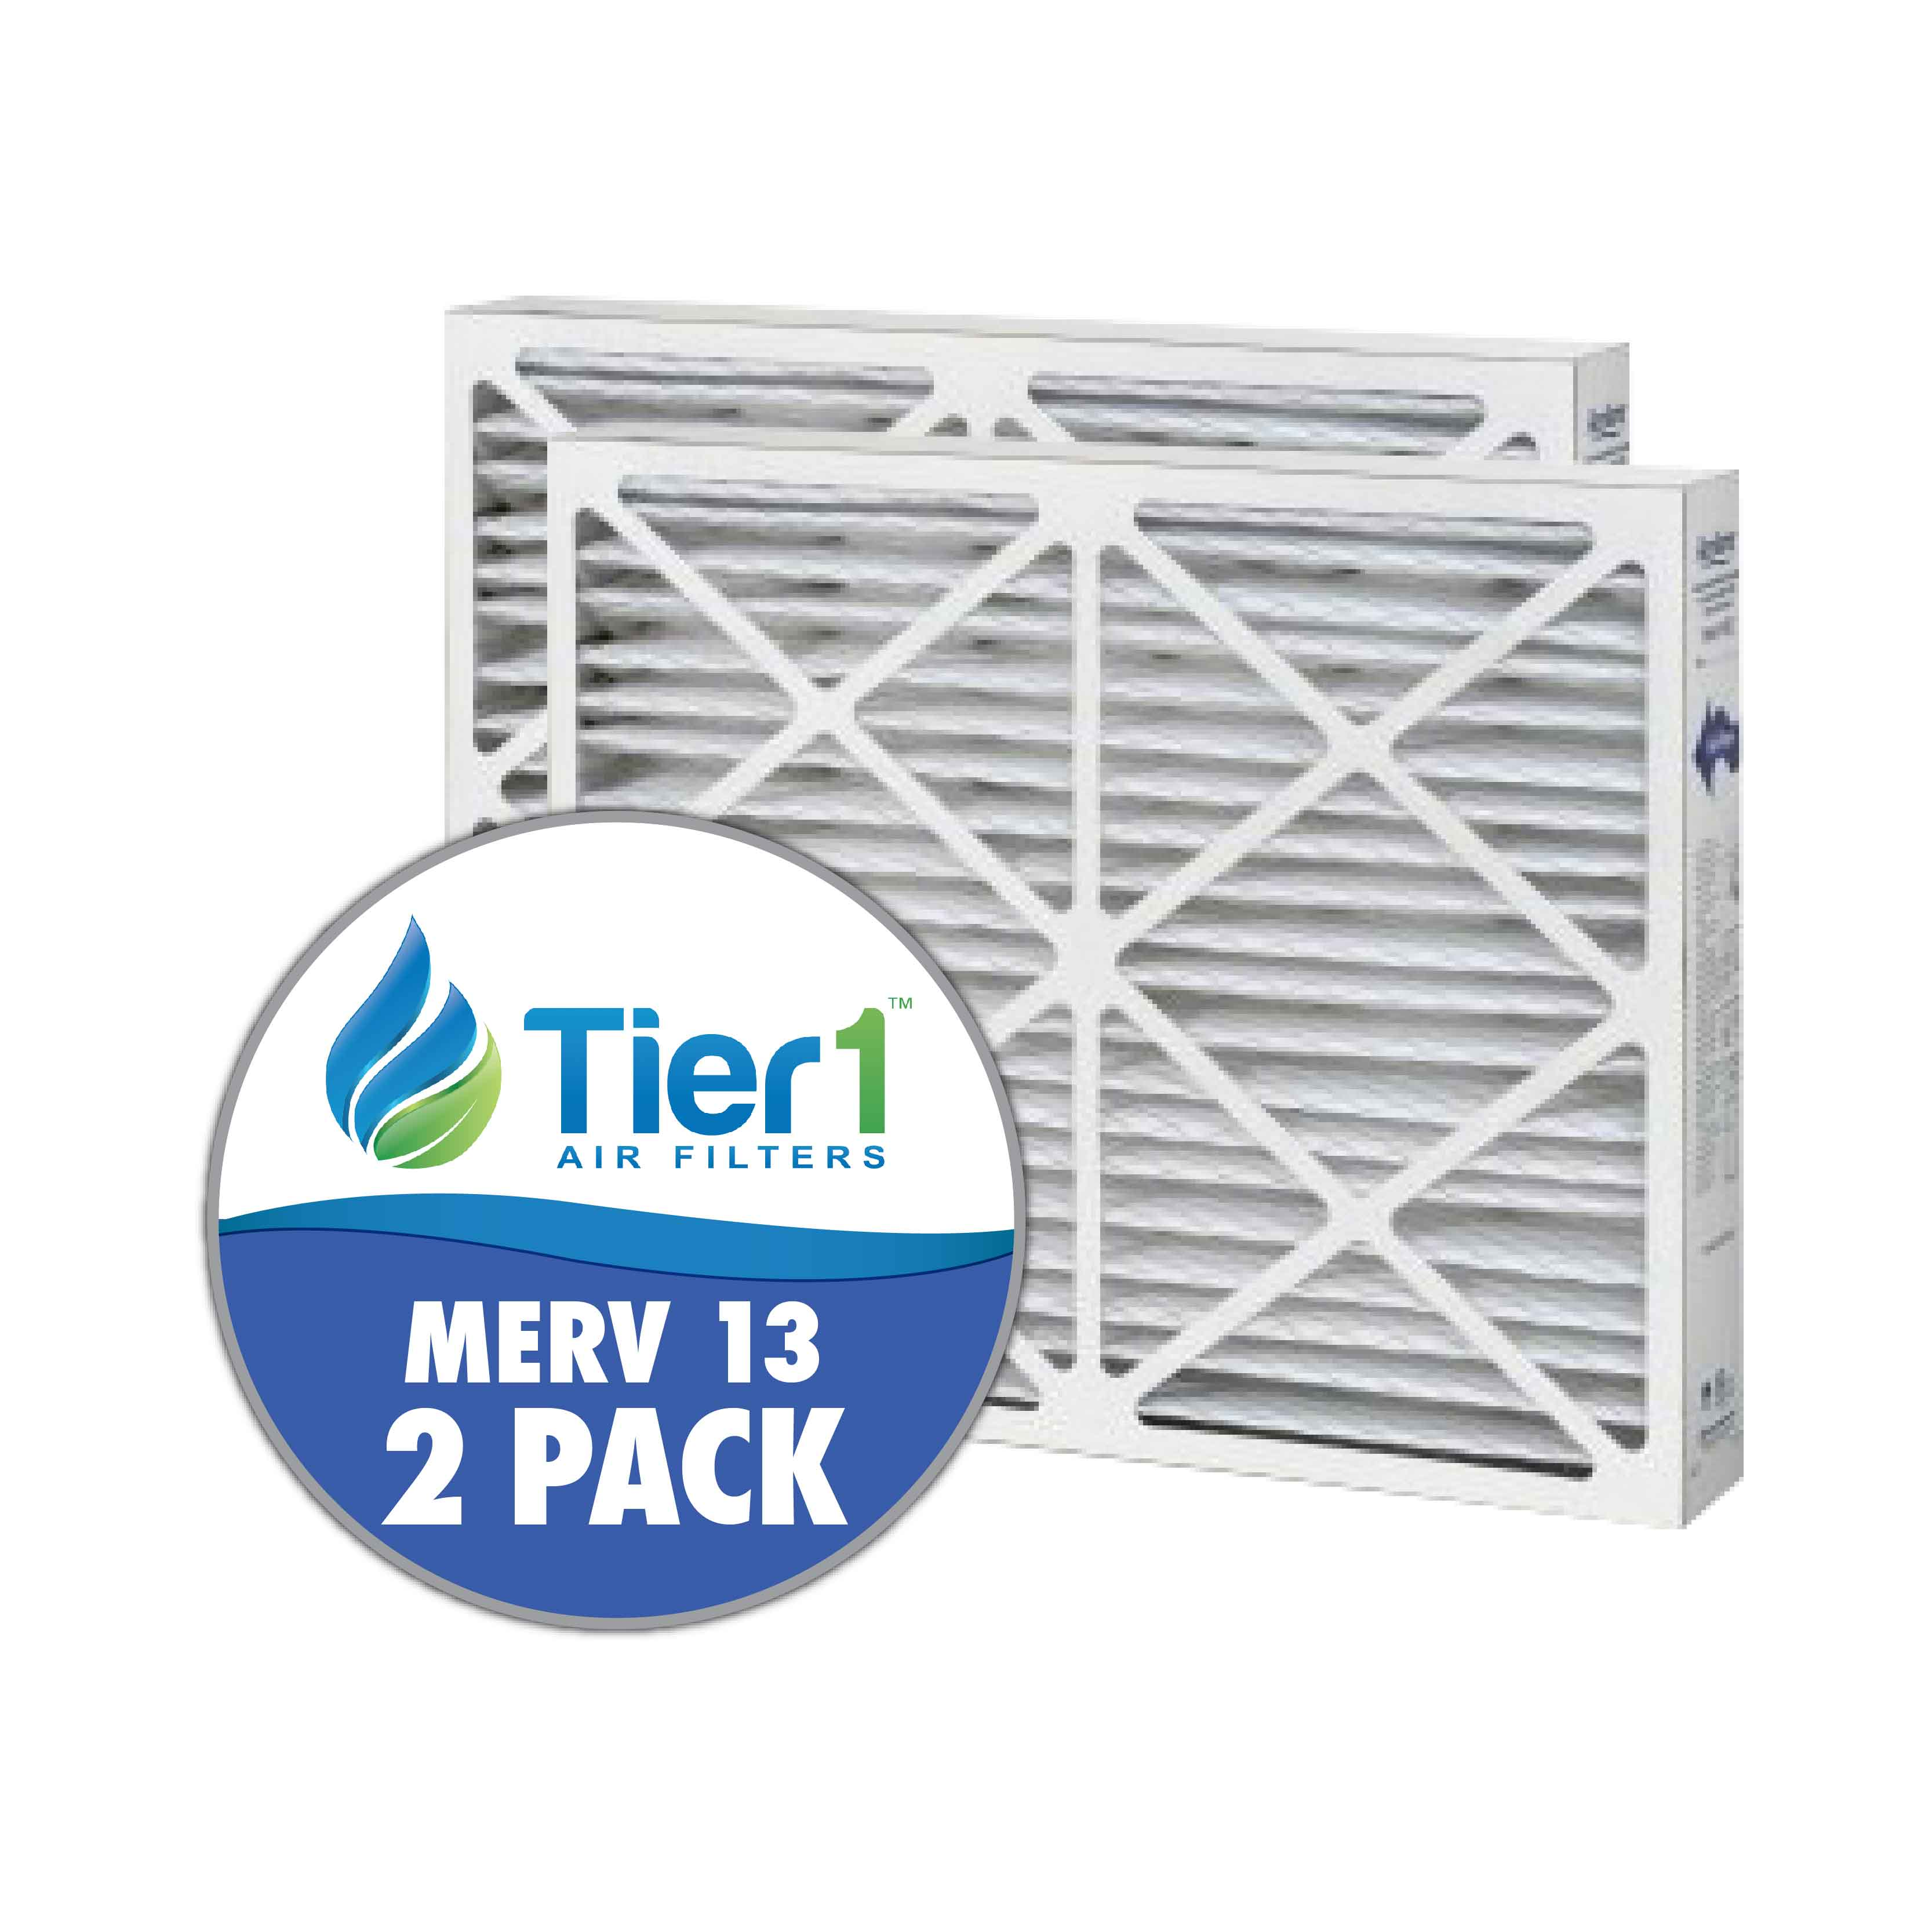 Tier1 brand replacement for Aprilaire #201 - 20 x 25 x 6 - MERV 13 (2-Pack) TIER1-DPFS20X25X6M13